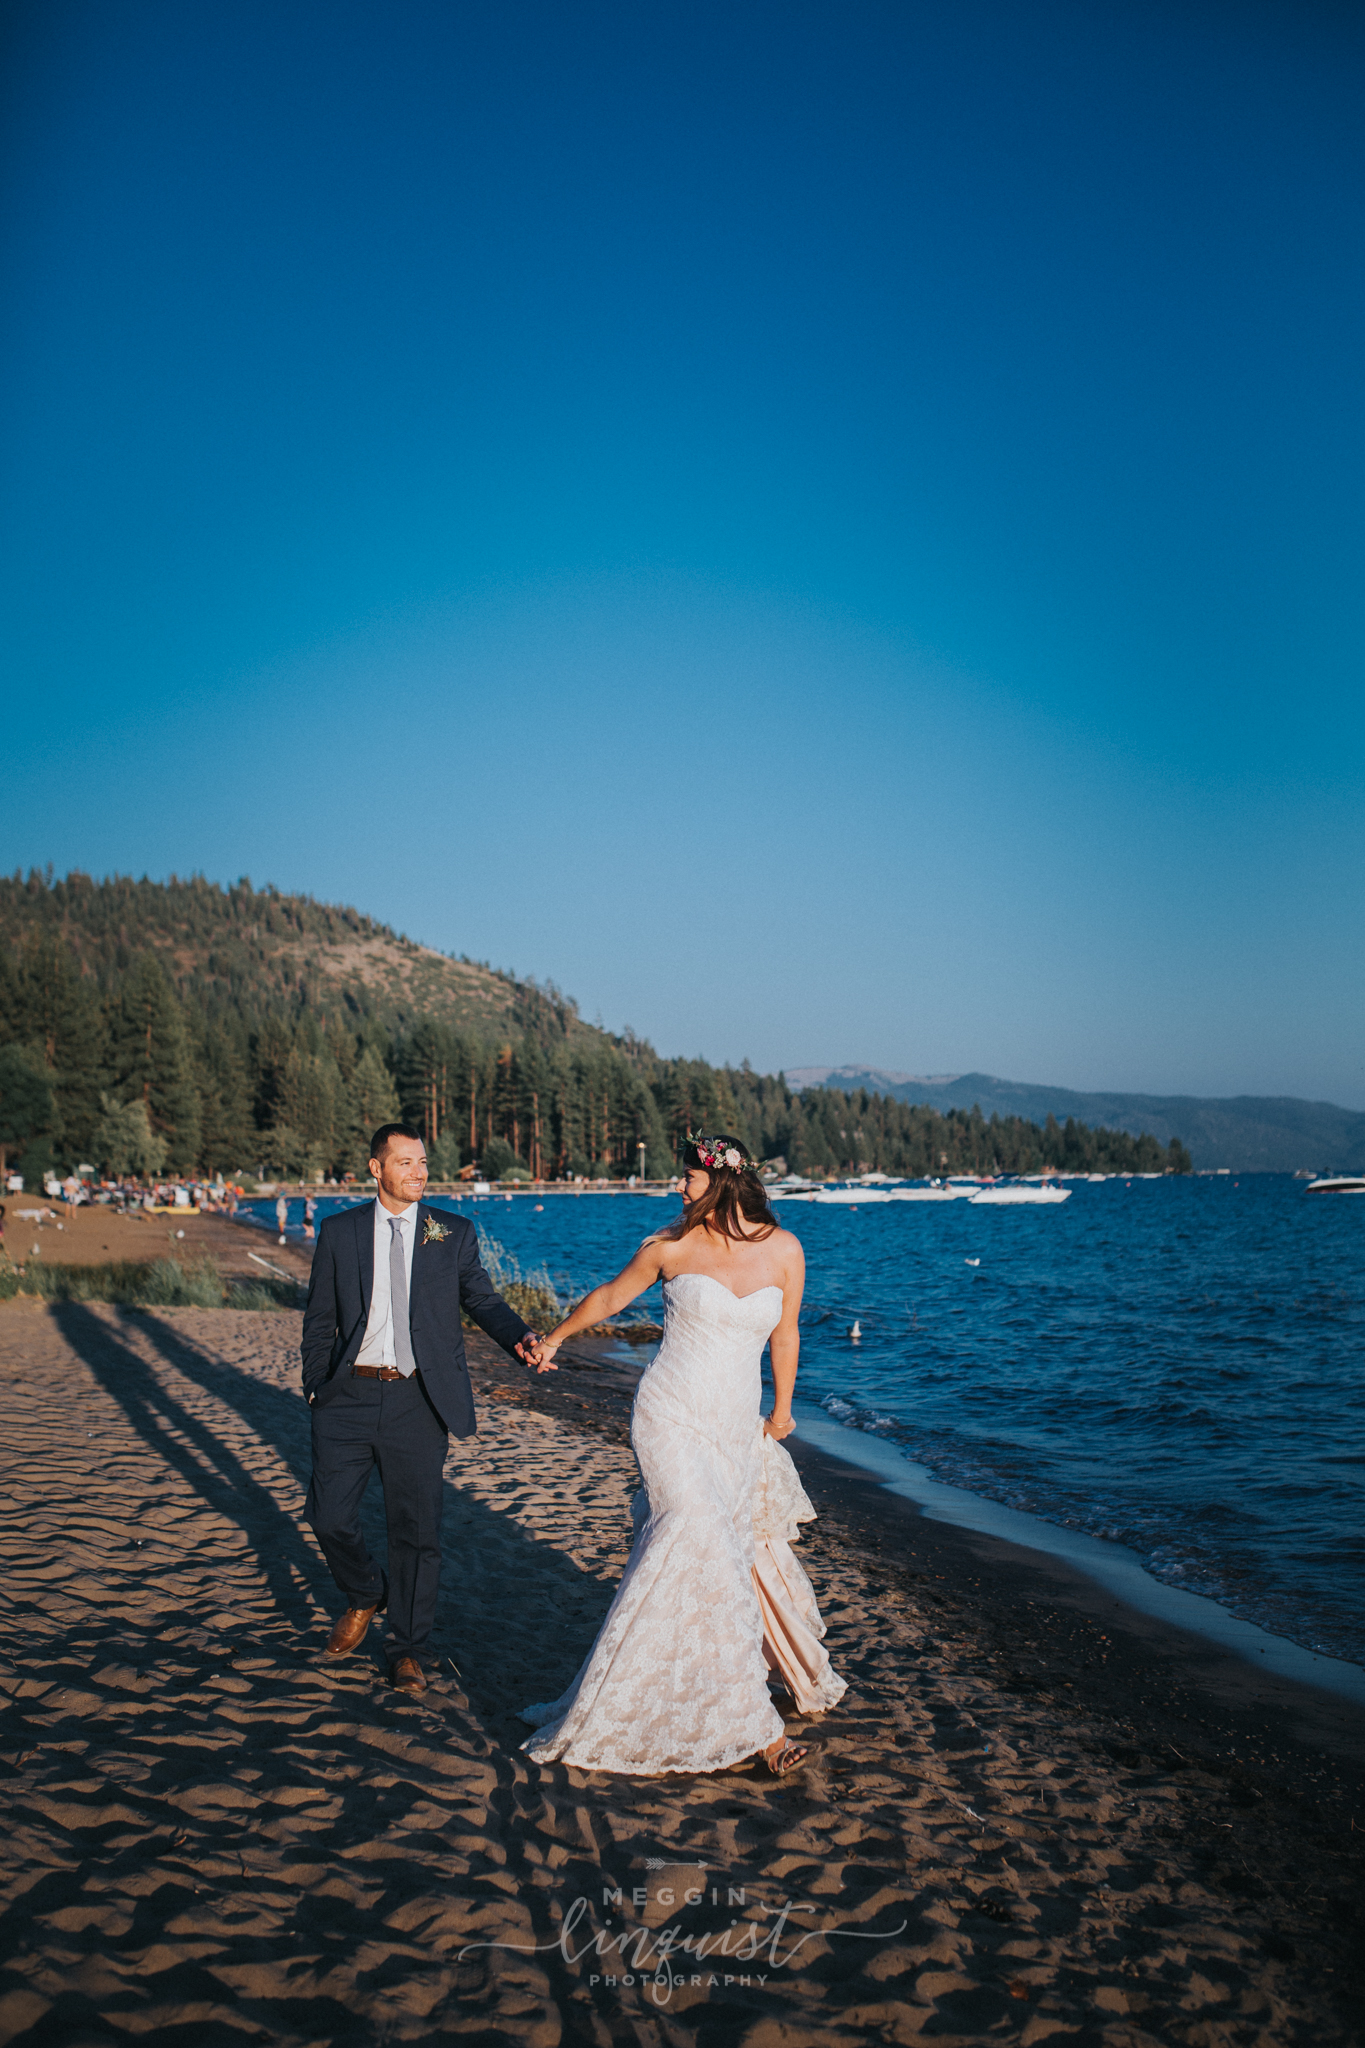 bohemian-style-lake-wedding-reno-lake-tahoe-wedding-photographer-54.jpg